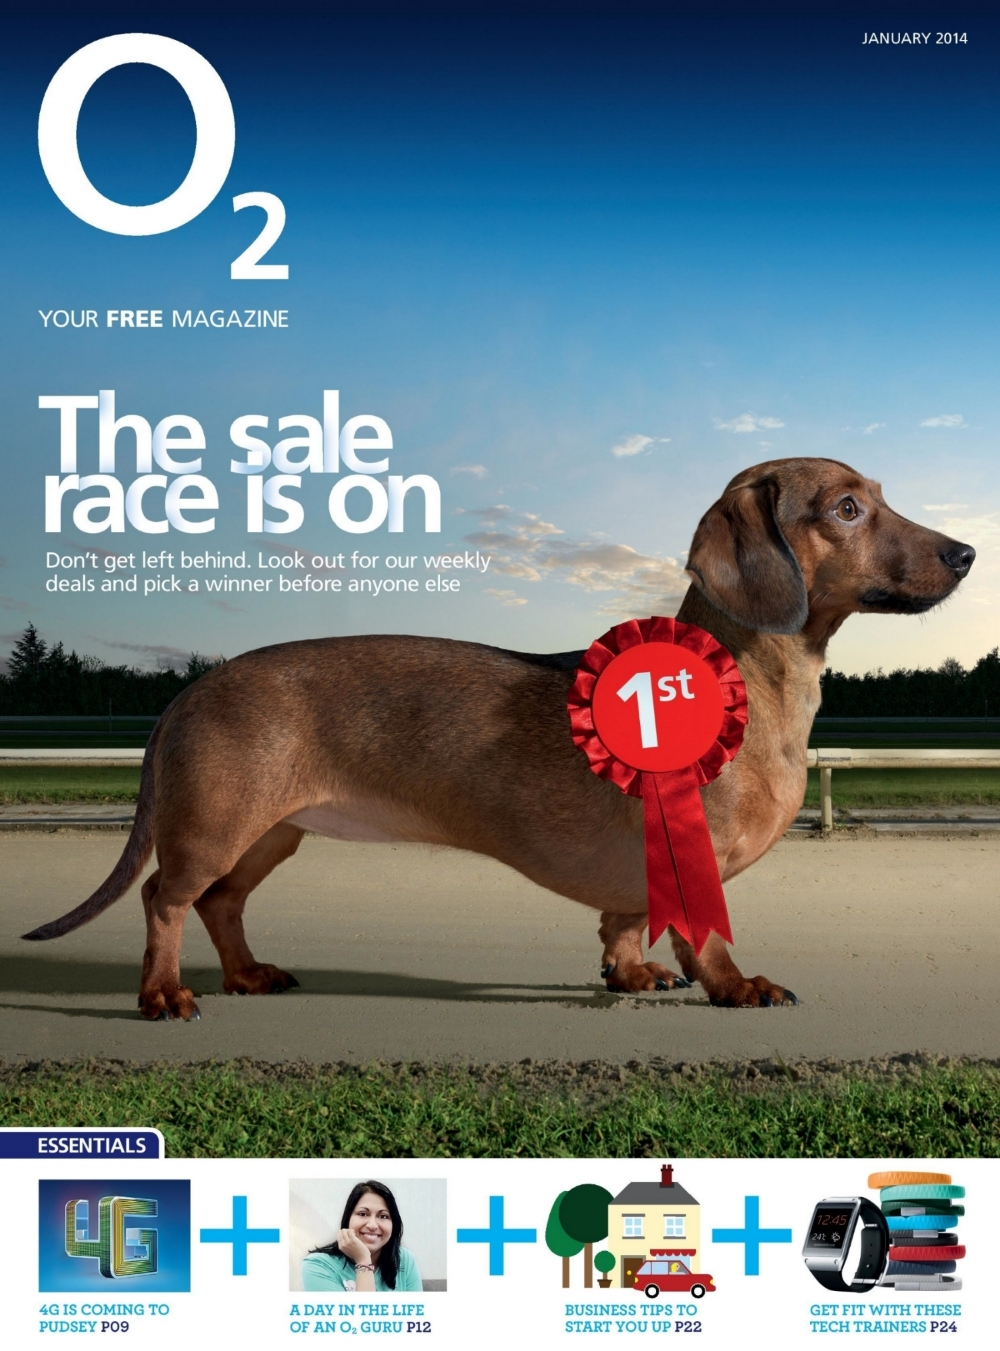 O2_magazine_January_sale.jpg